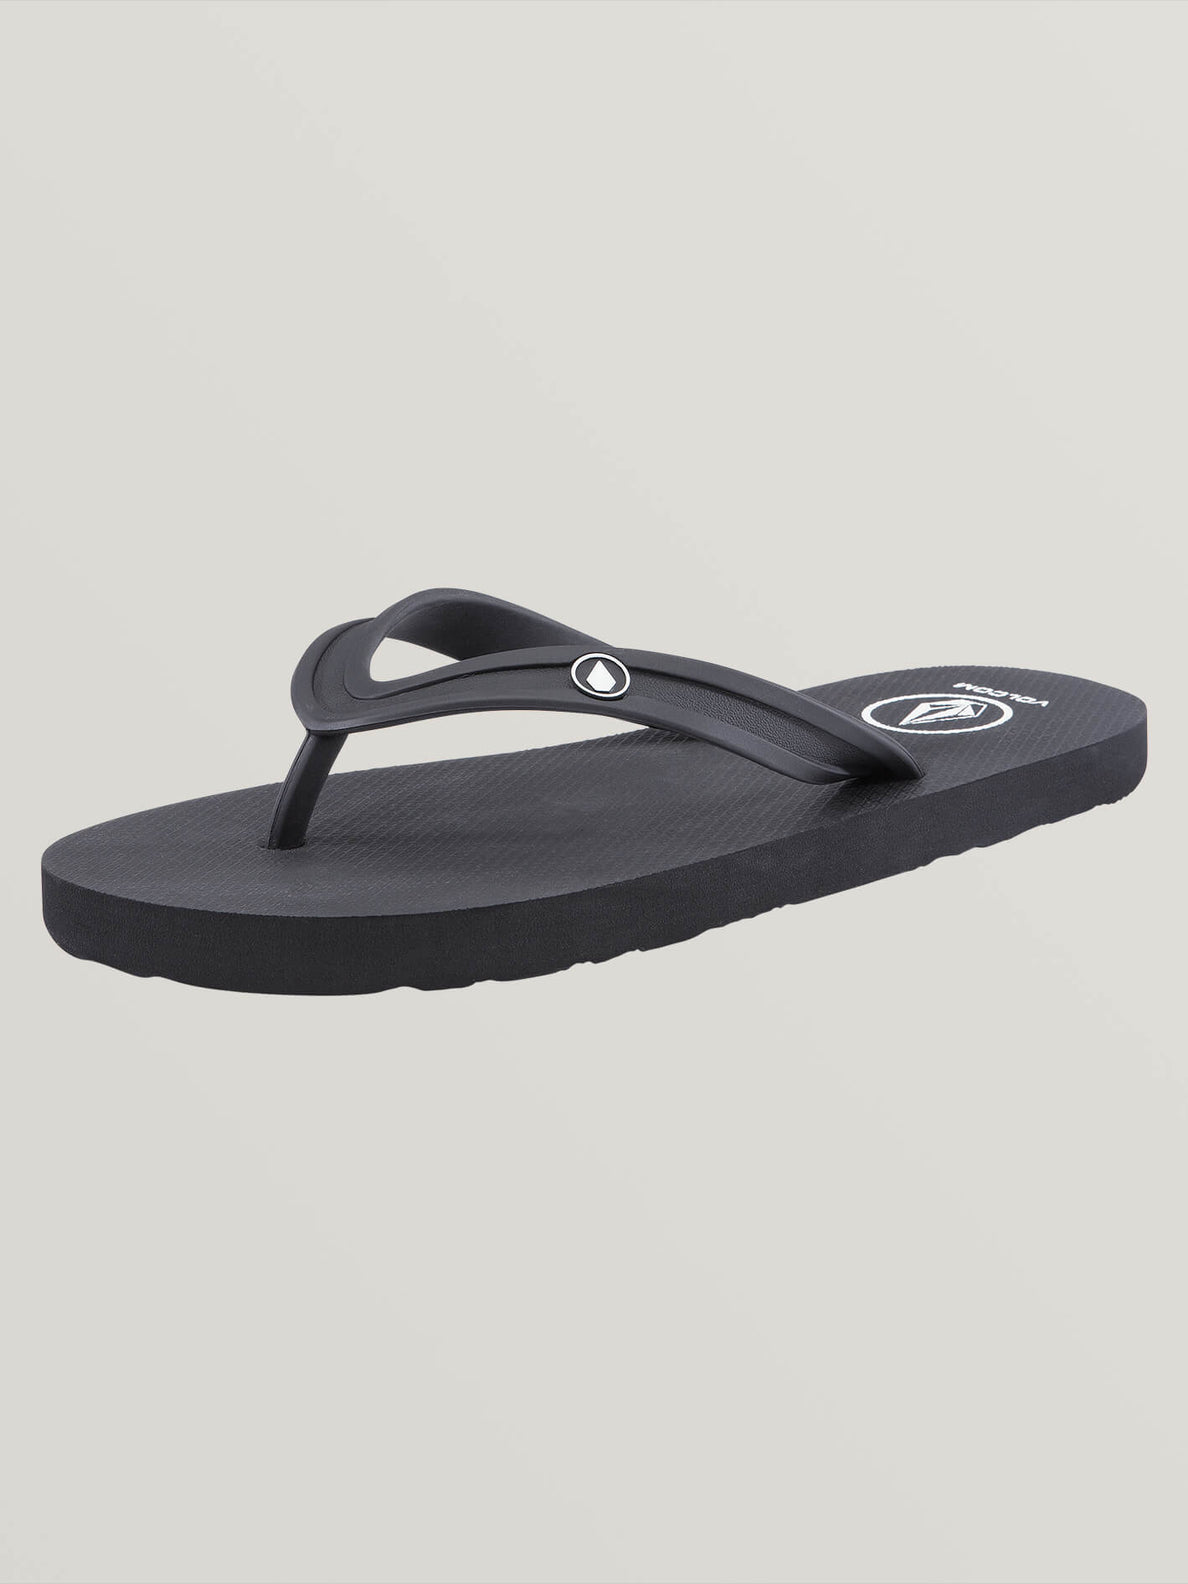 Big Boys Rocker 2 Sandal - Black (X0811800_BLK) [5]